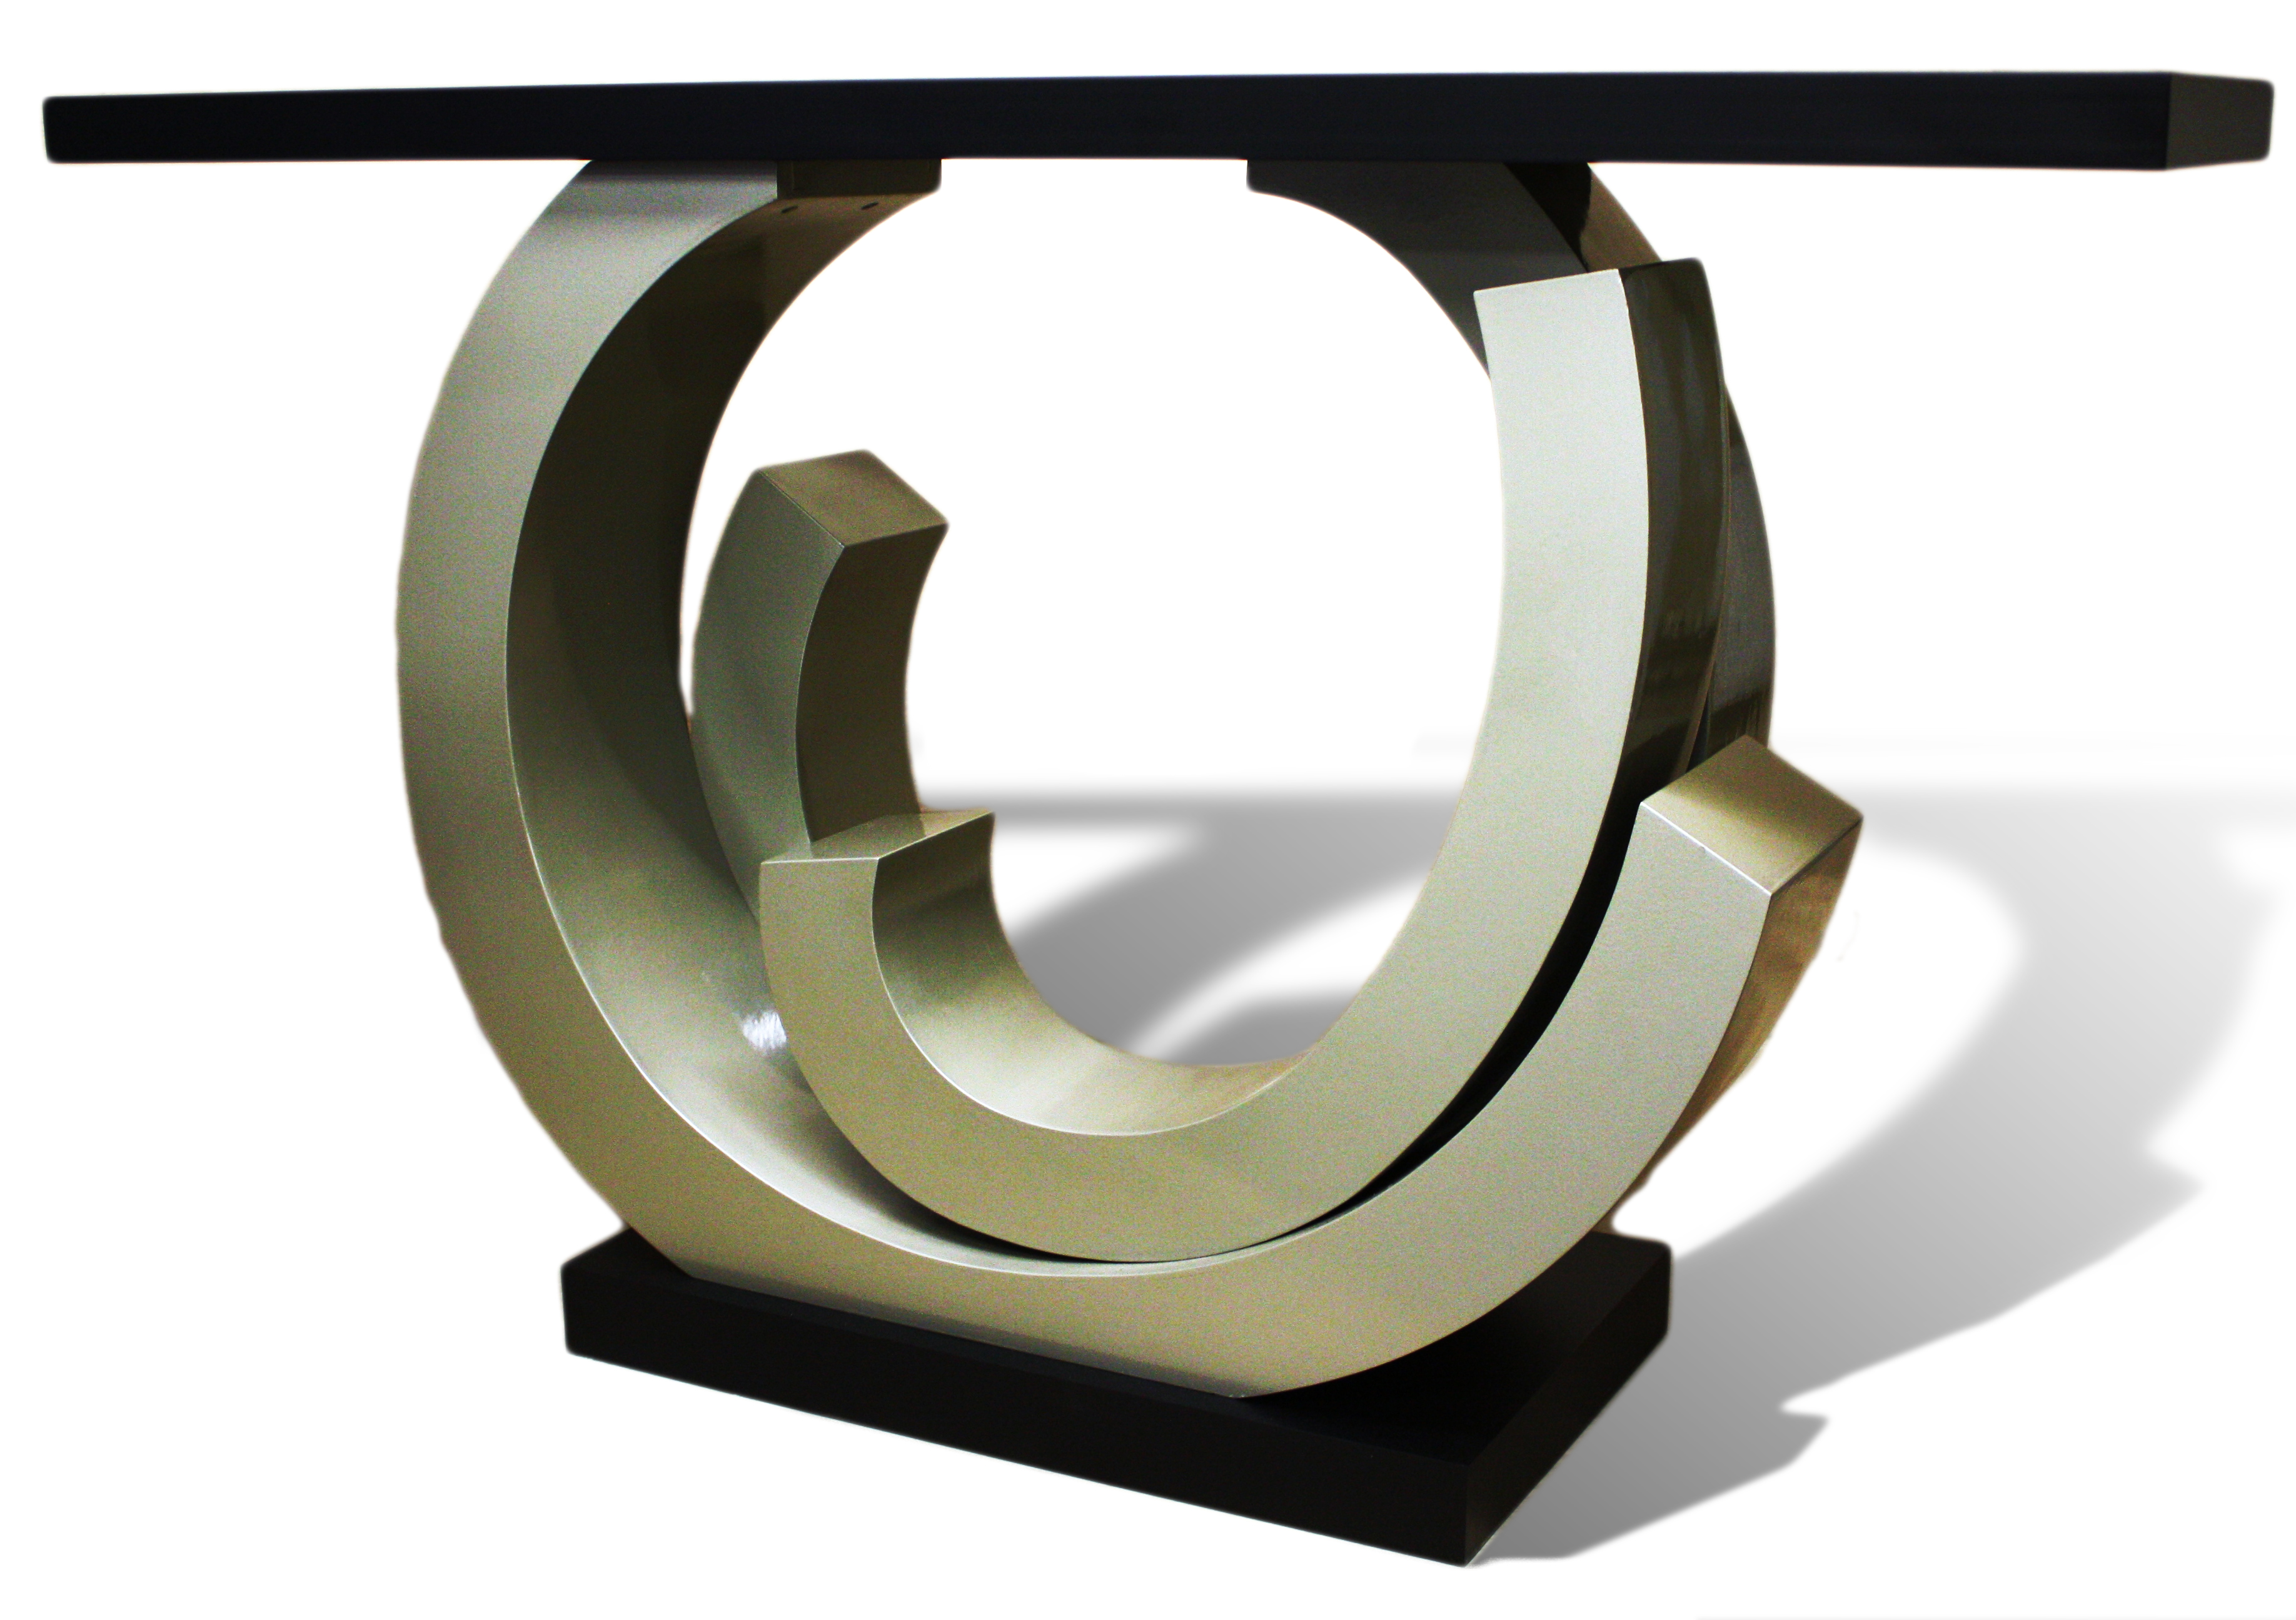 Funky console table with matching mirror appleton jacob furniture funky console table with matching mirror appleton geotapseo Gallery